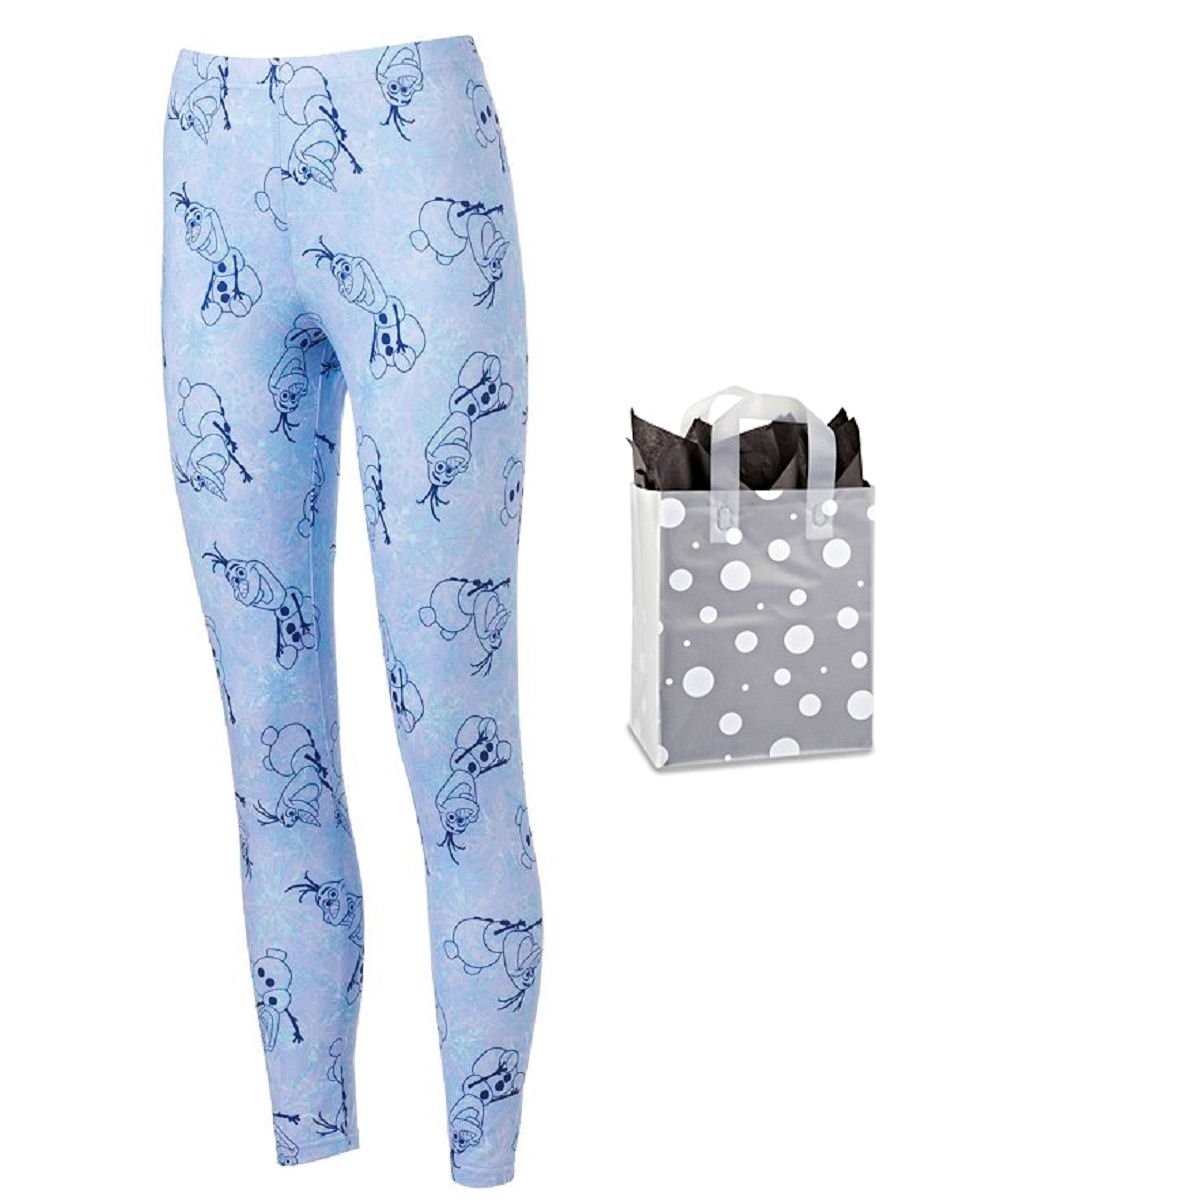 Disney Womens' Juniors Frozen Olaf Leggings & Bag - 2 Piece Gift Set (Large)